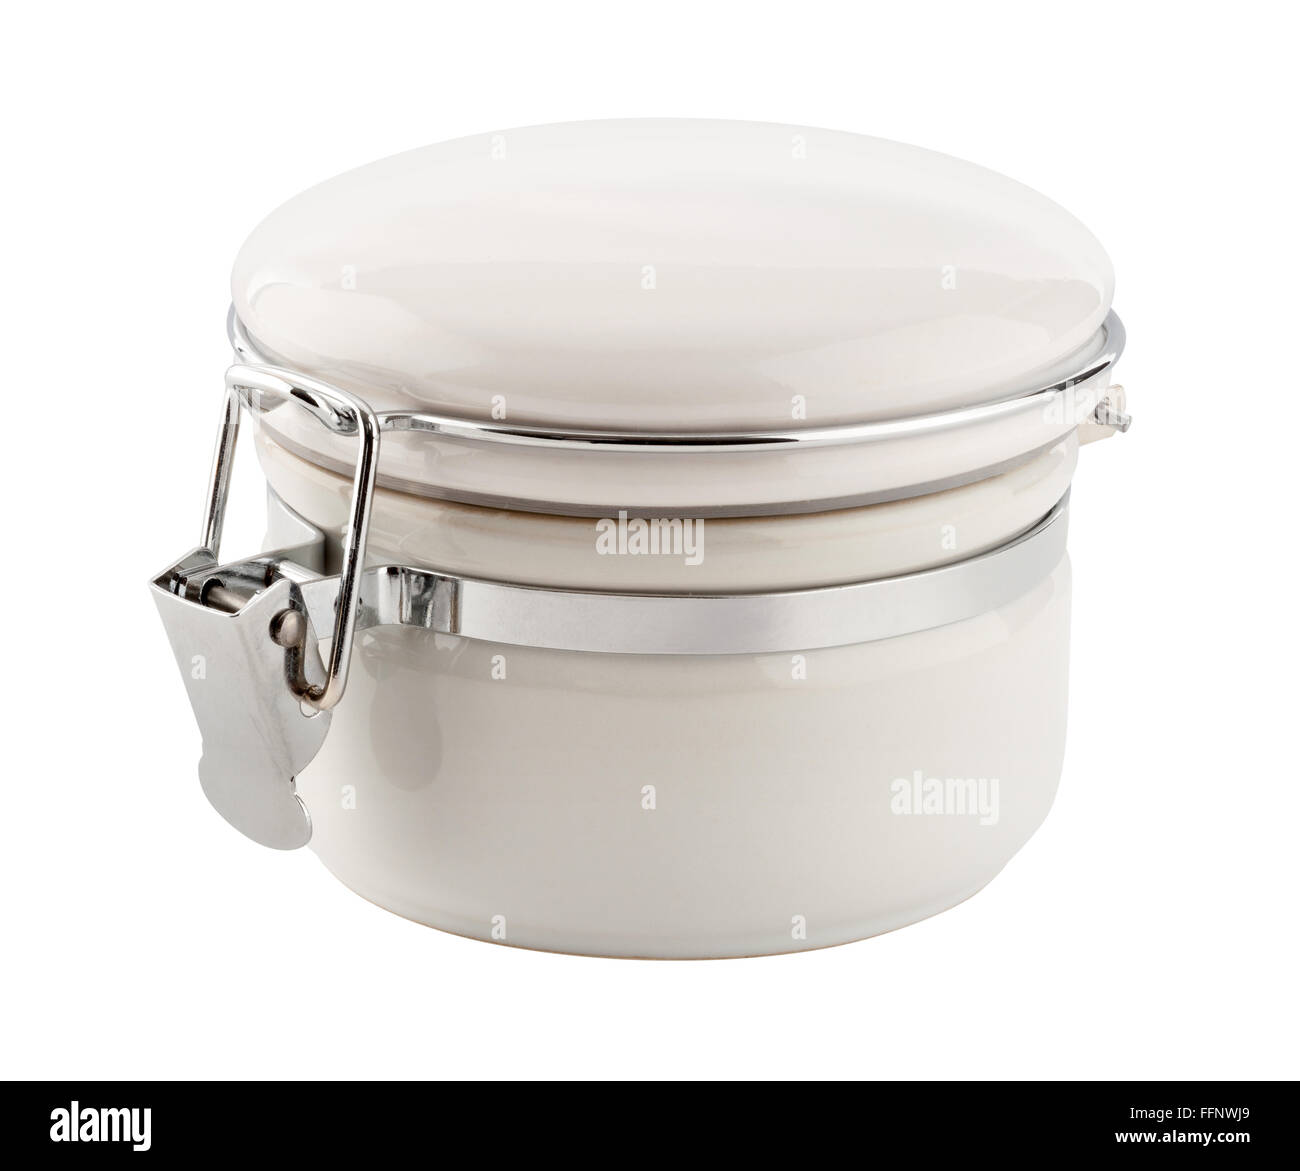 White Ceramic Canister with Metal Clamp. The image is a cut out, isolated on a white background. - Stock Image